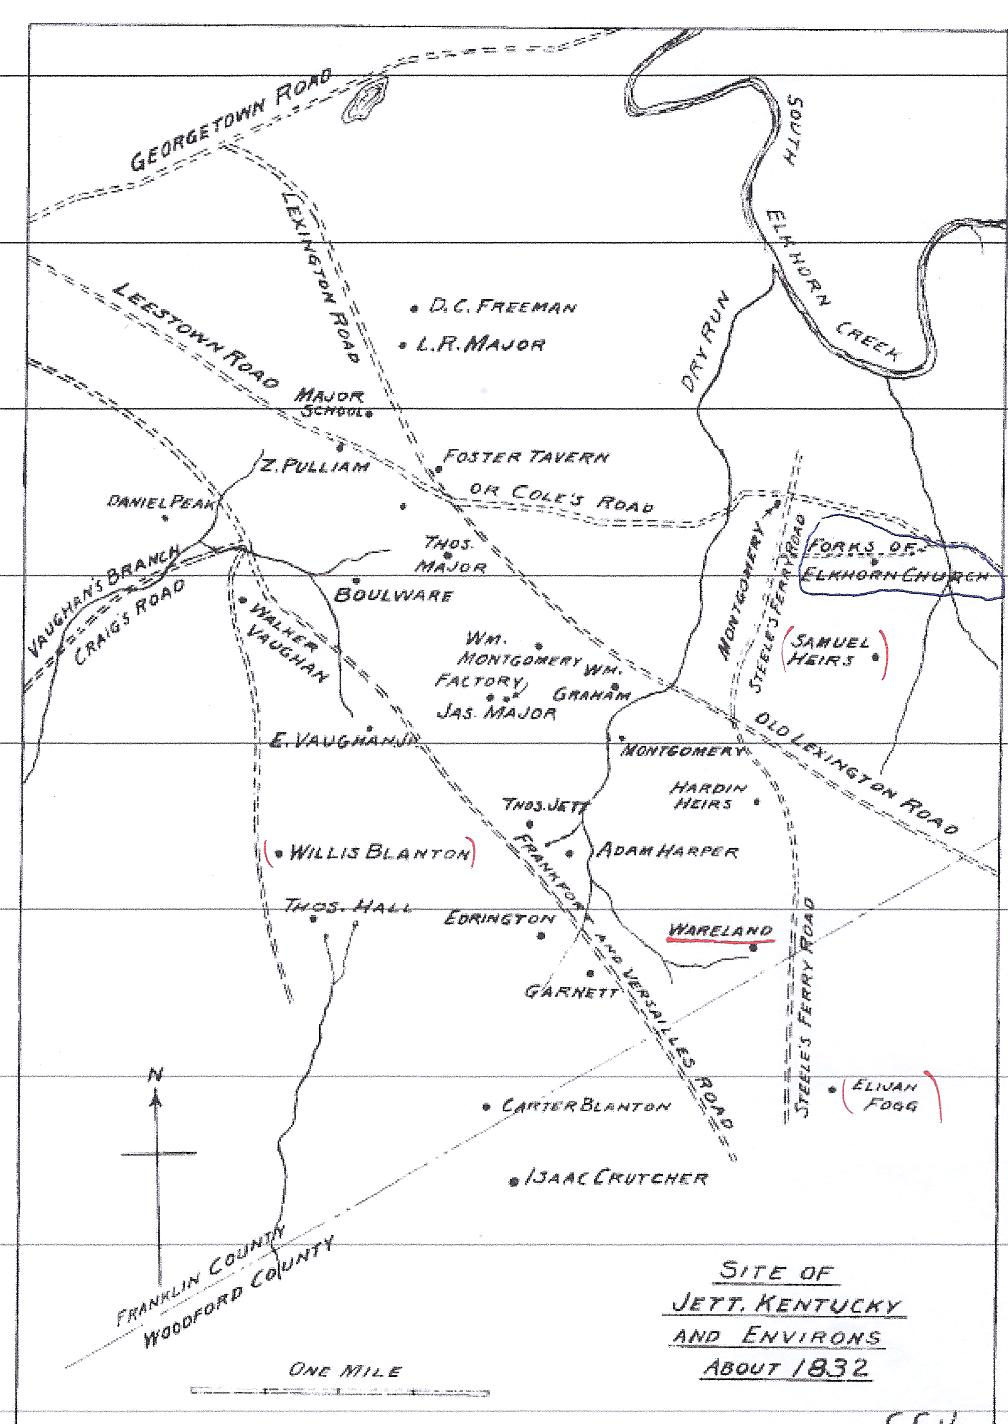 Map provided courtesy of david nance and the forks of elkhorn baptist church records